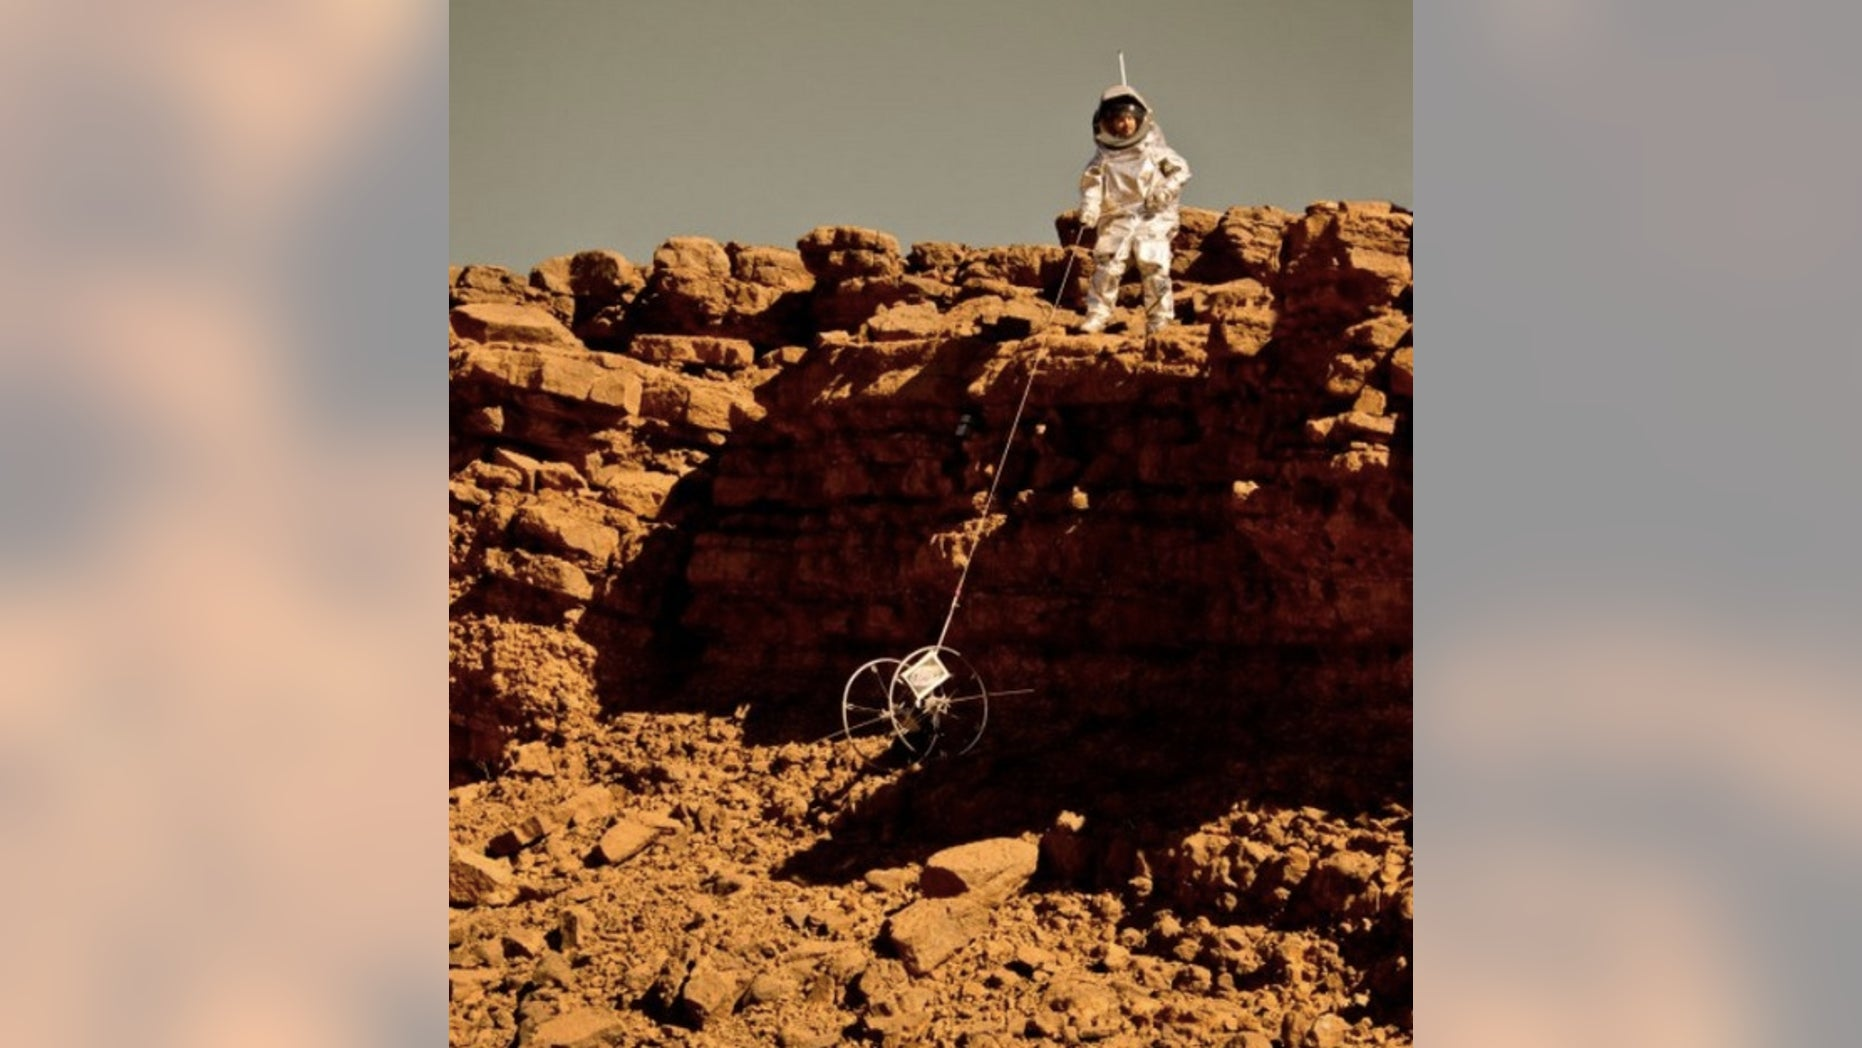 A 'Cliffbot' is lowered over some rocks during a field test in Morocco in 2013.